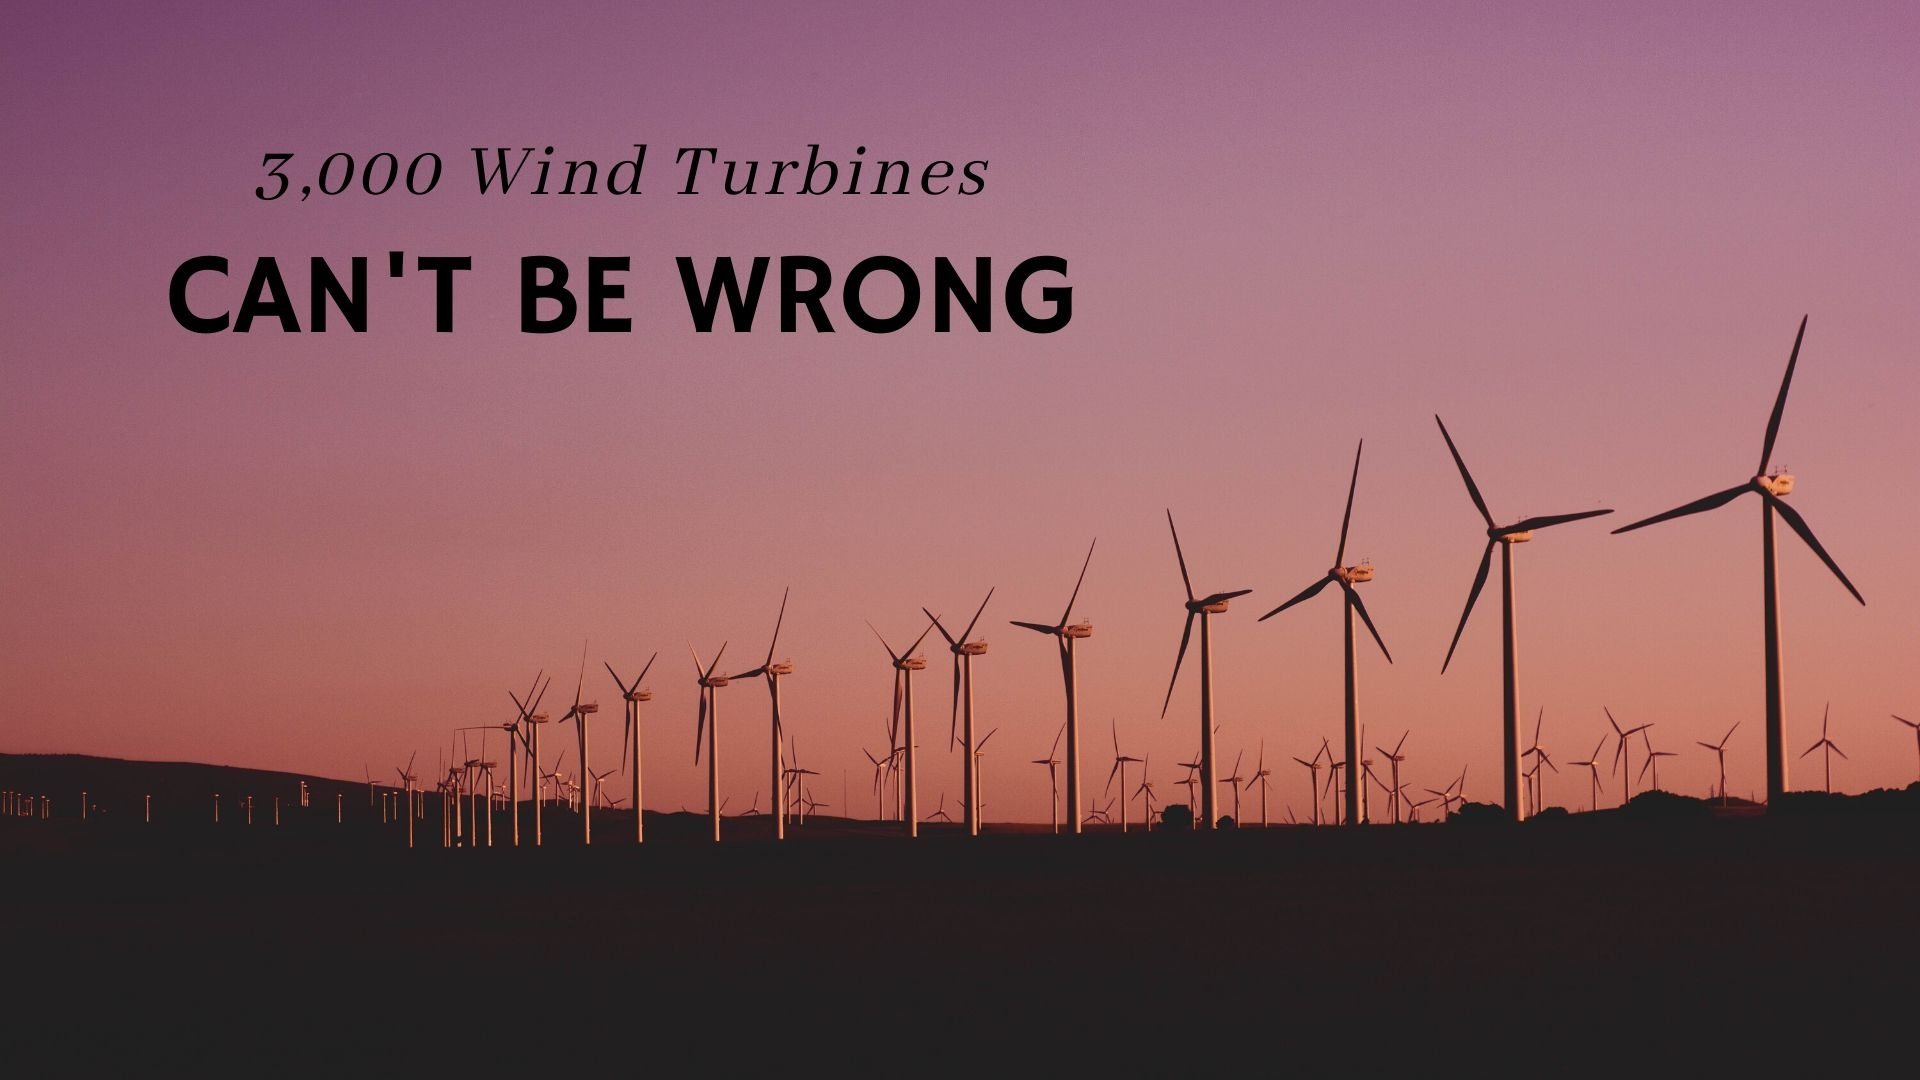 Sunday February 9, 2020 3,000 Wind Turbines Can't Be Wrong - Pastor Anthony Cox